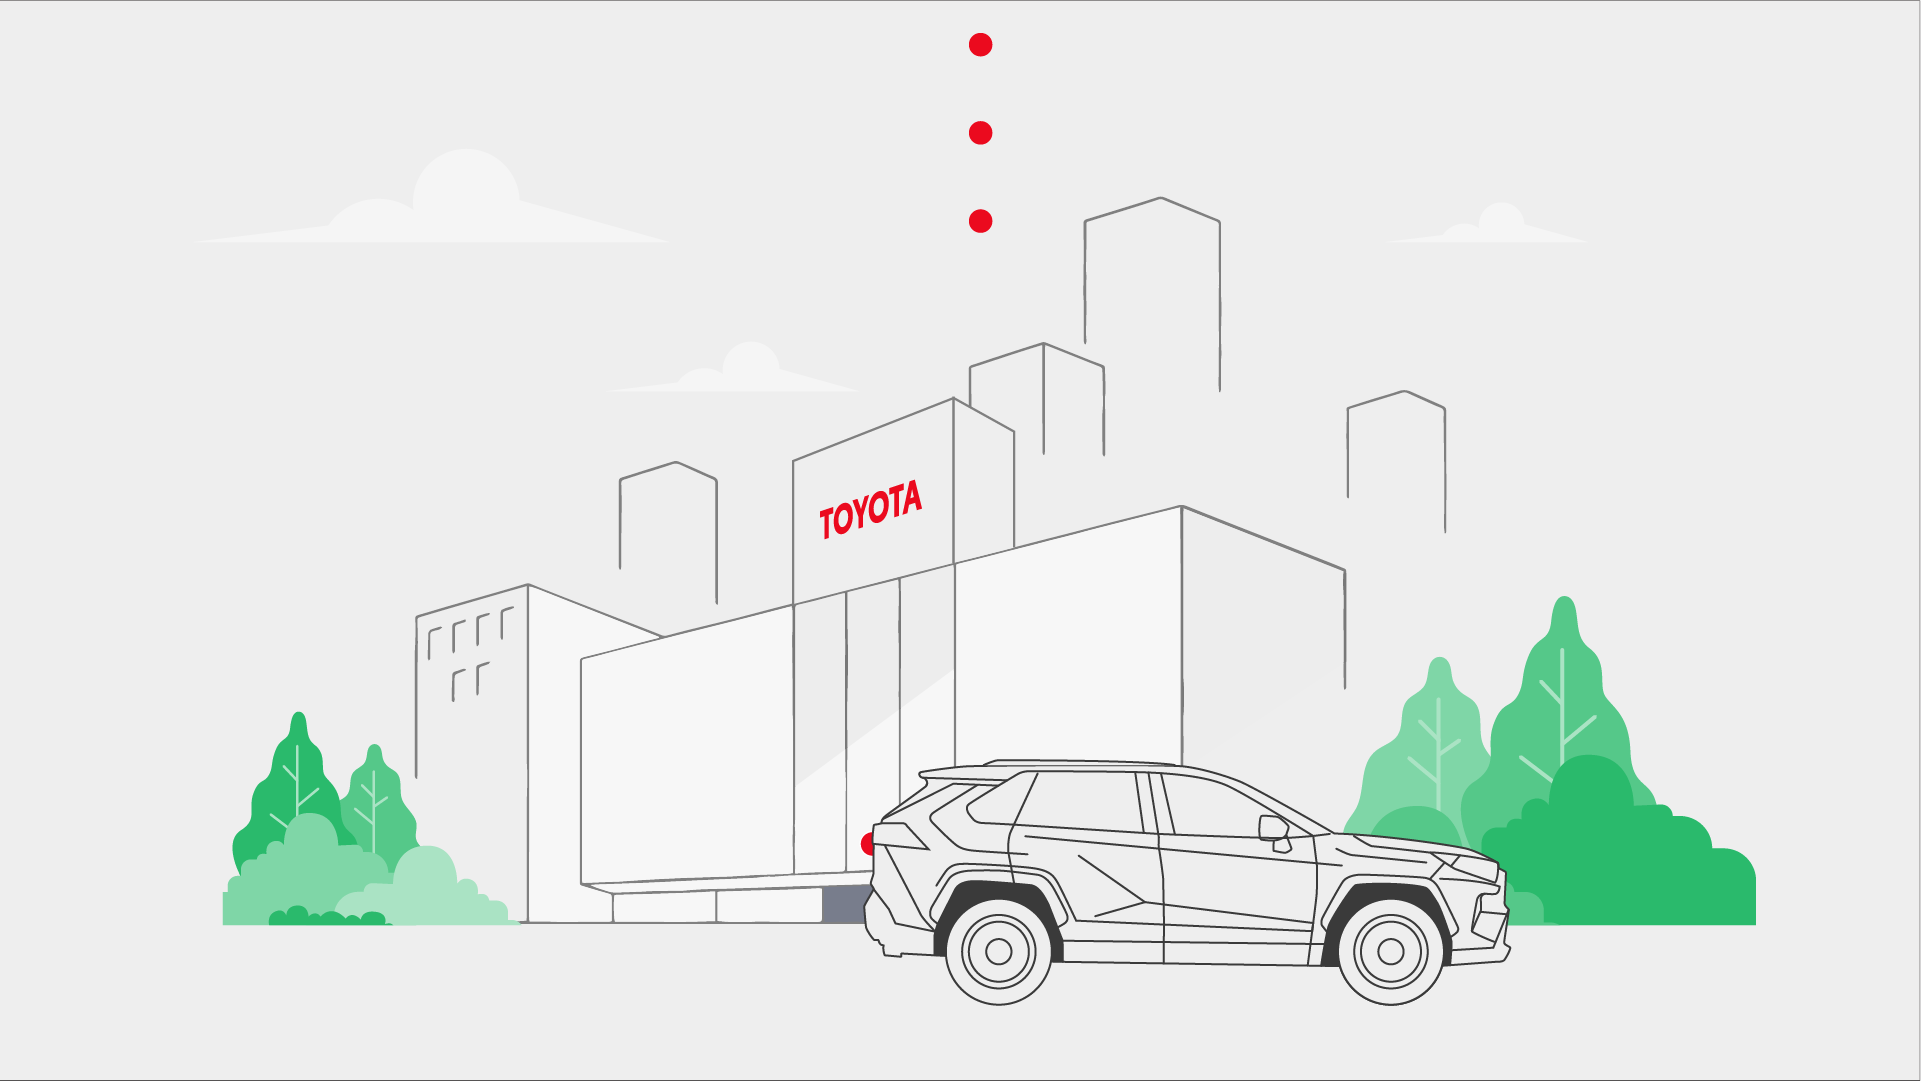 TOYOTA – Personal Repayments